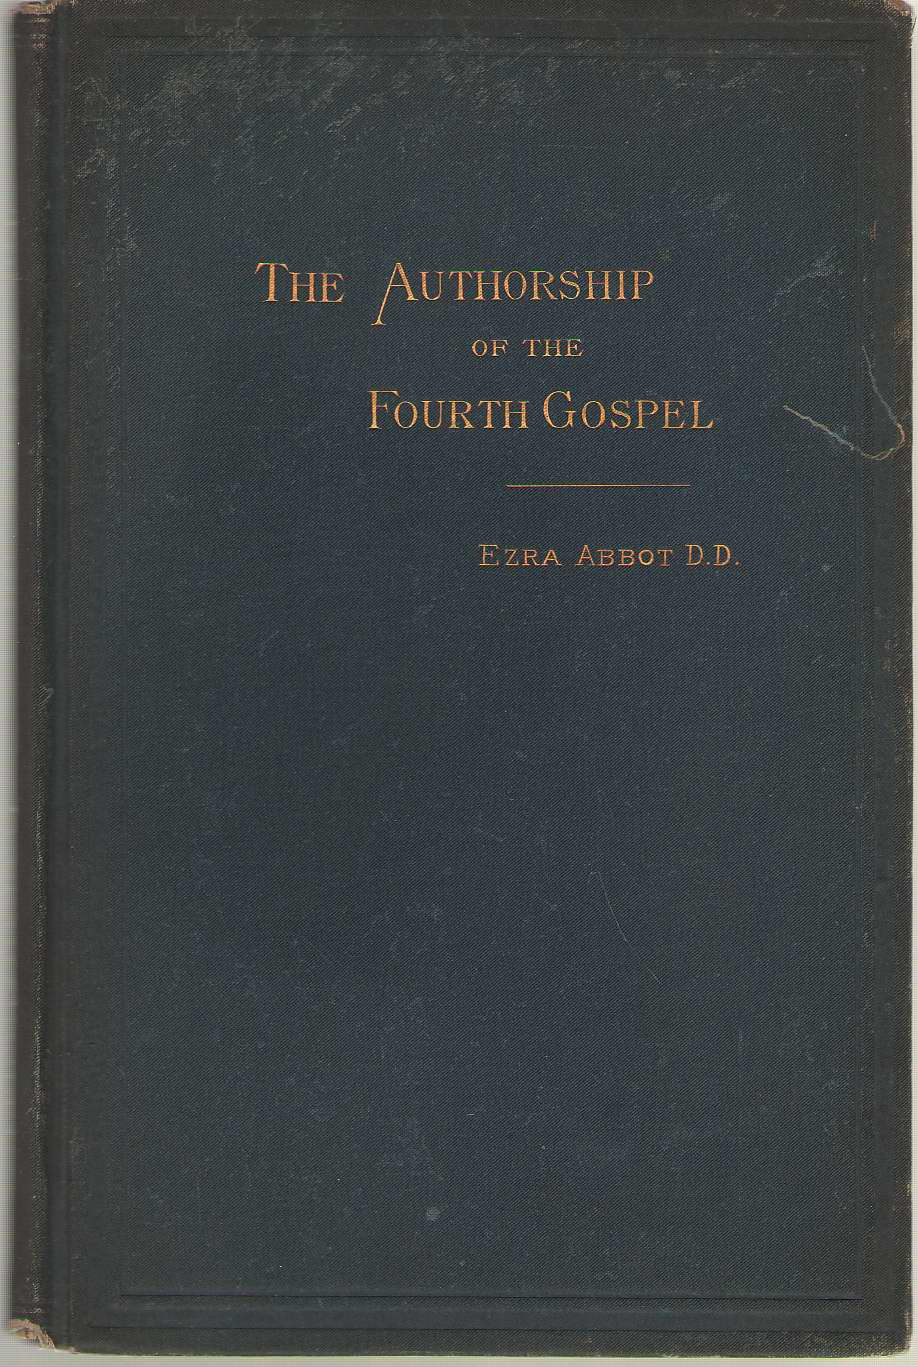 Authorship Of The Fourth Gospel: External Evidences, Abbot, Ezra